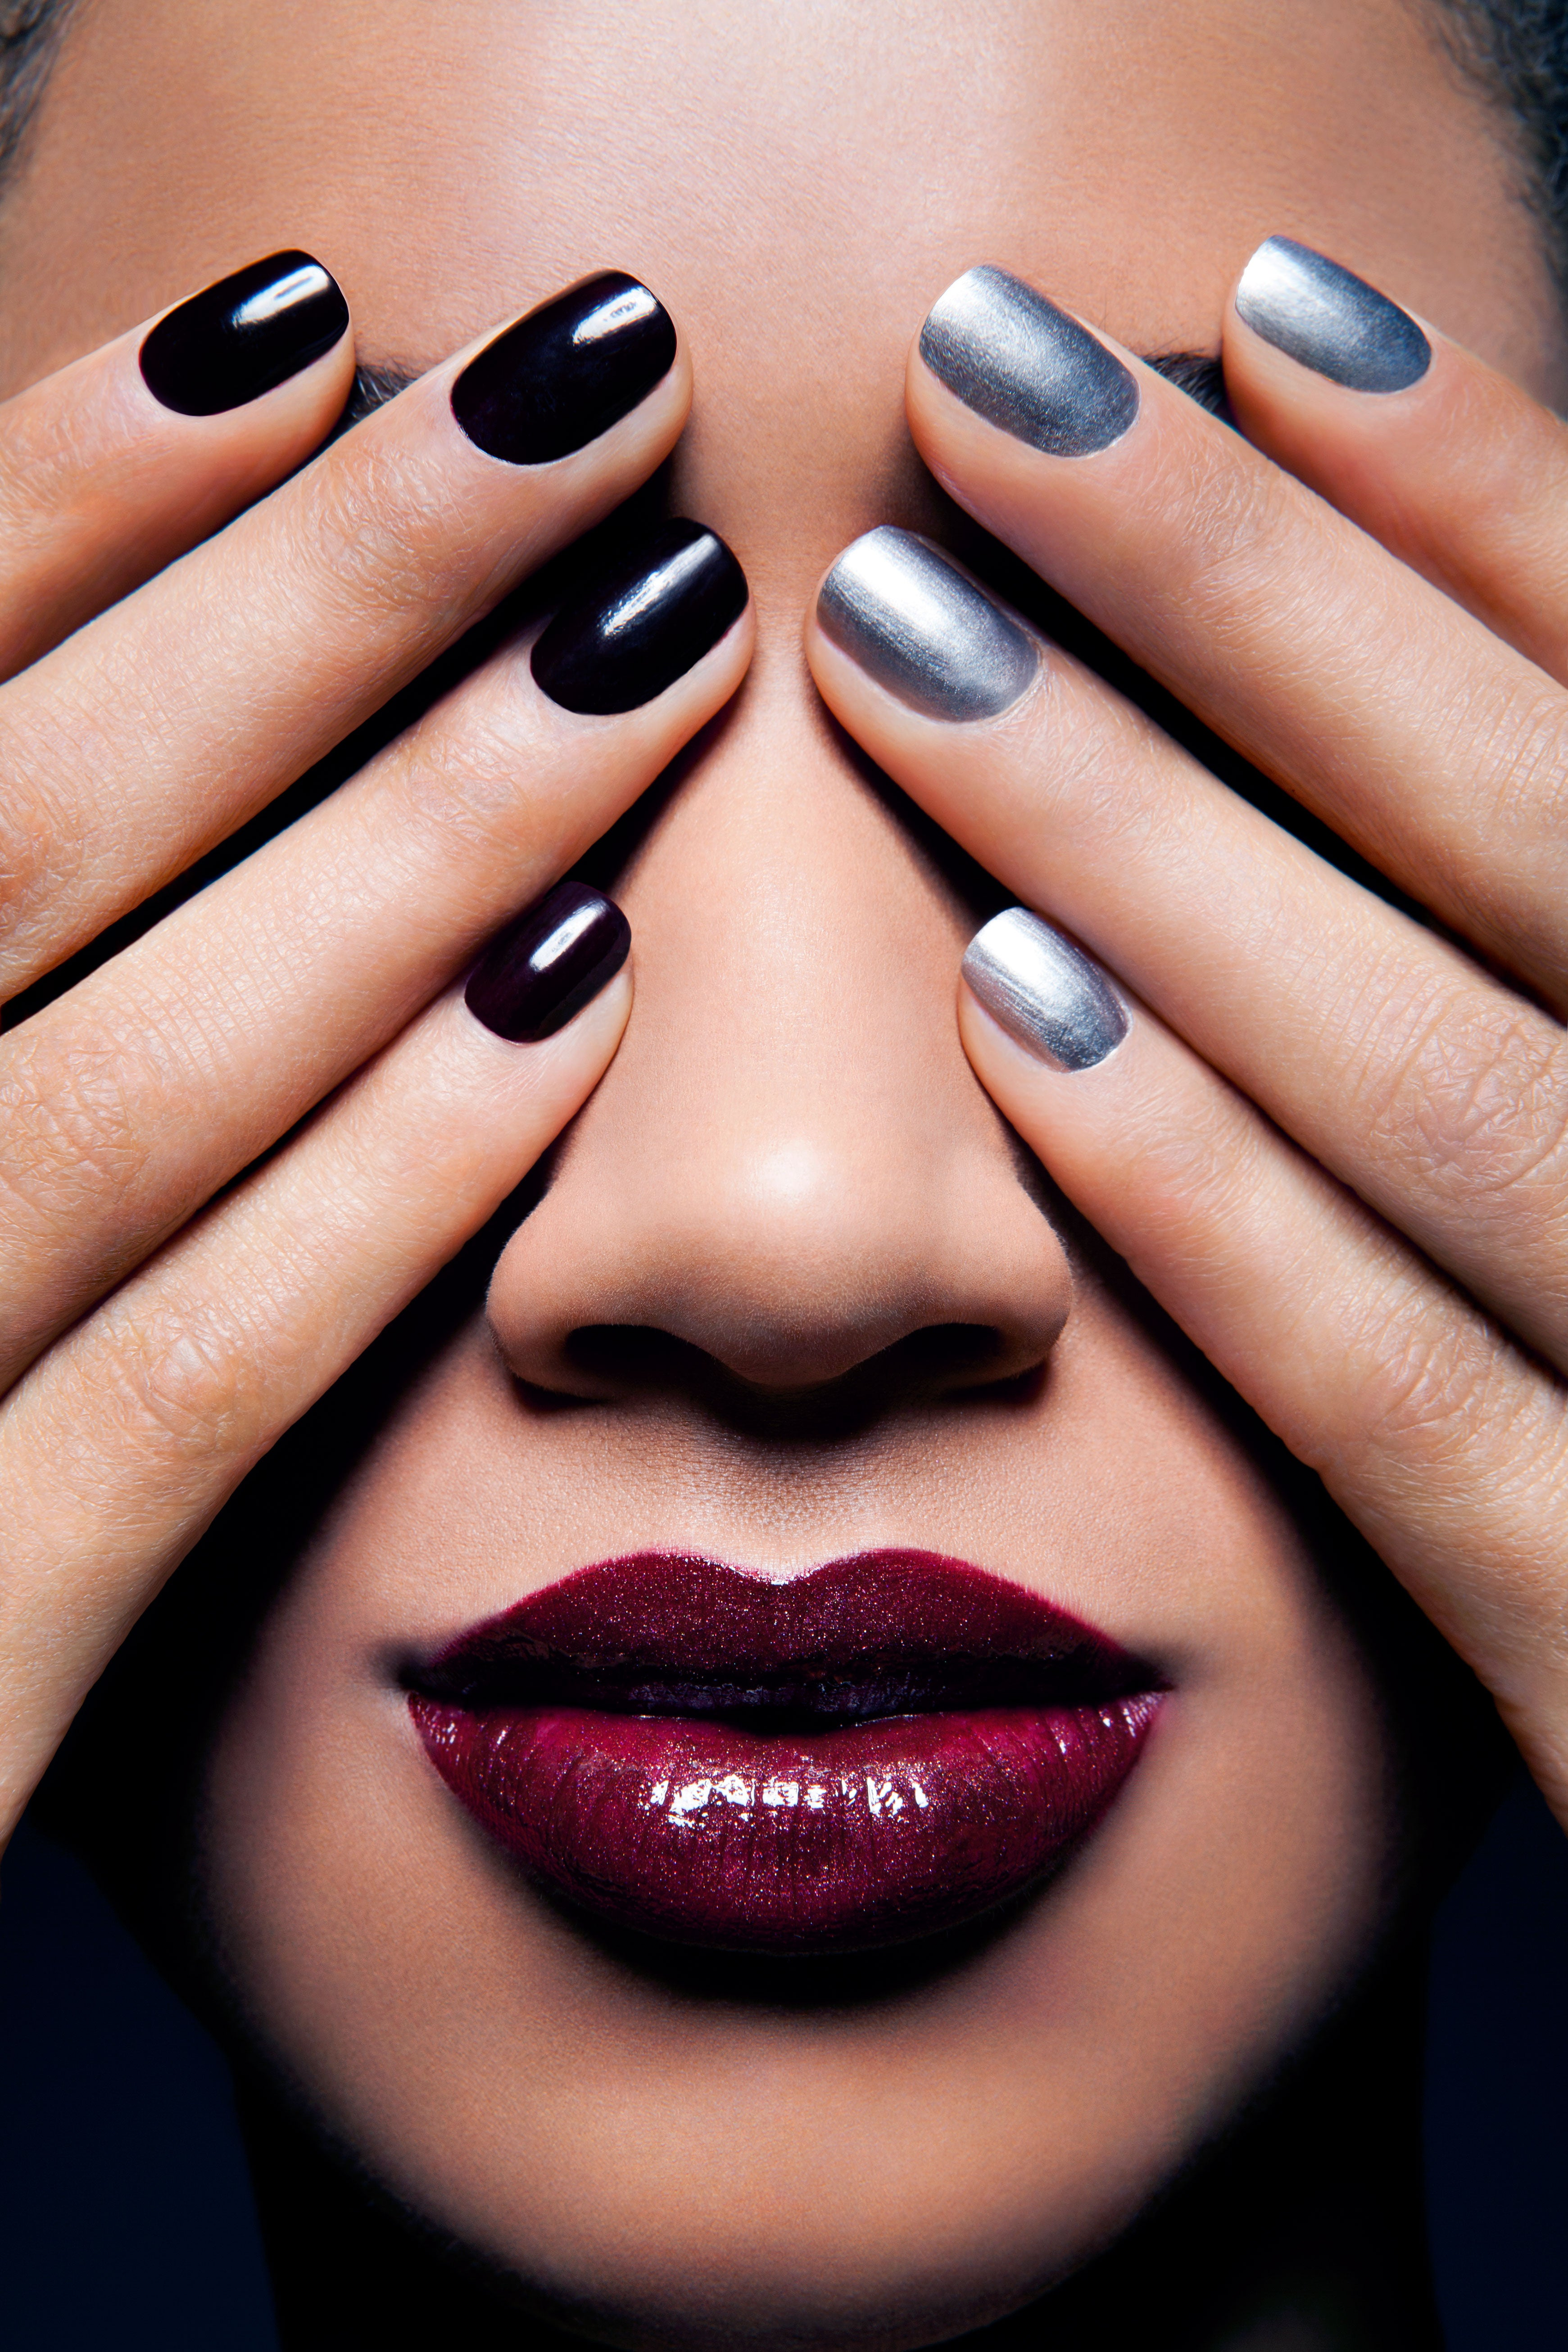 How To Do At Home Manicure - Essence